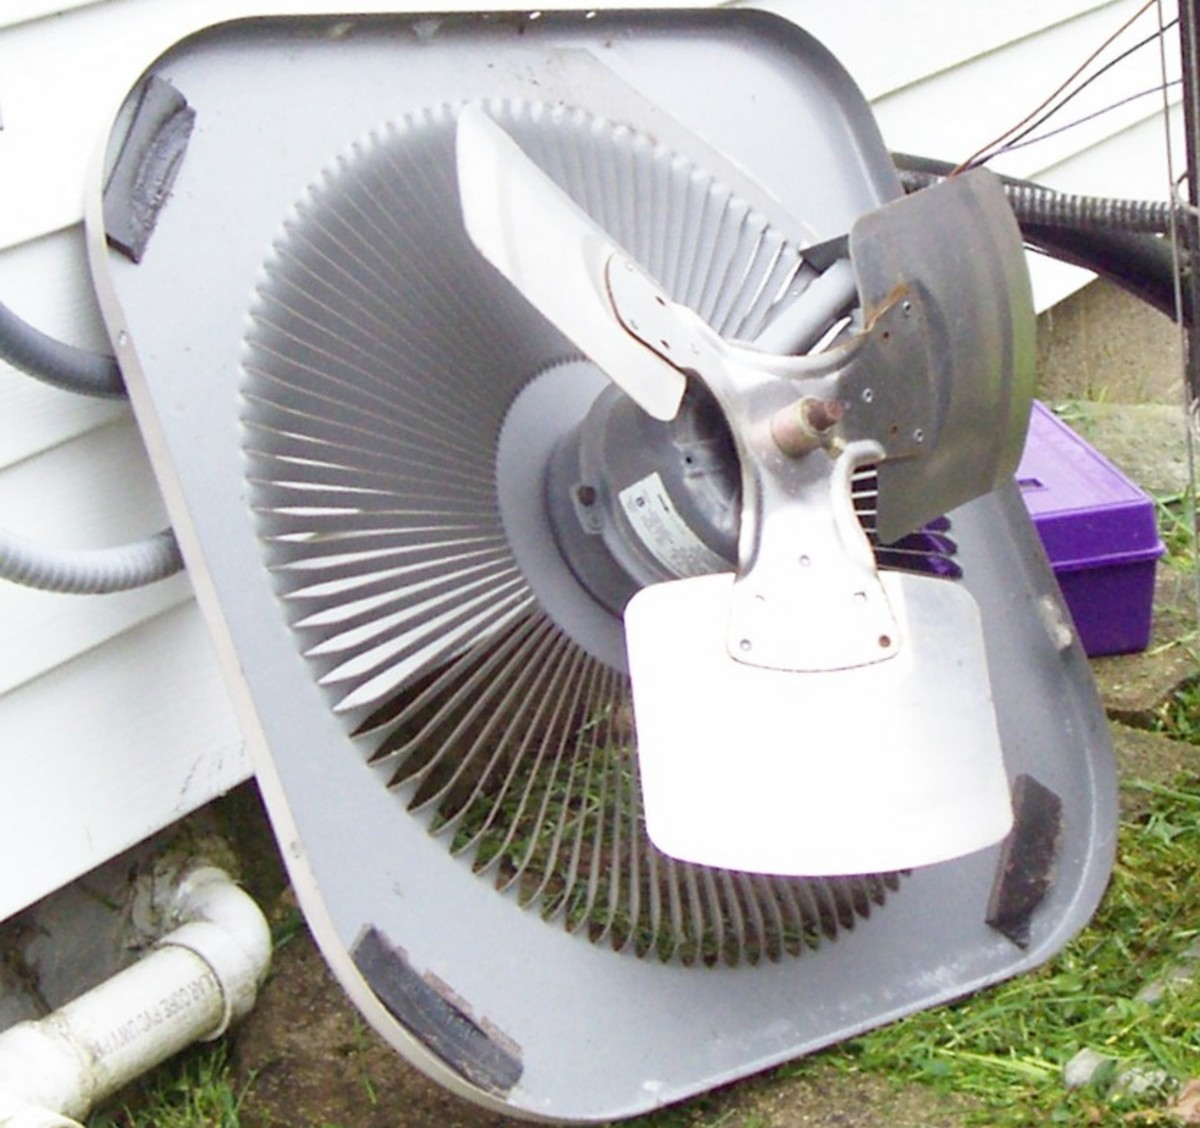 Here the condenser lid is removed so that you can see the fan and motor. Notice the solid housing on the motor. Be sure your fan spins freely with your hand and if not, lubricate the shaft so that it does.